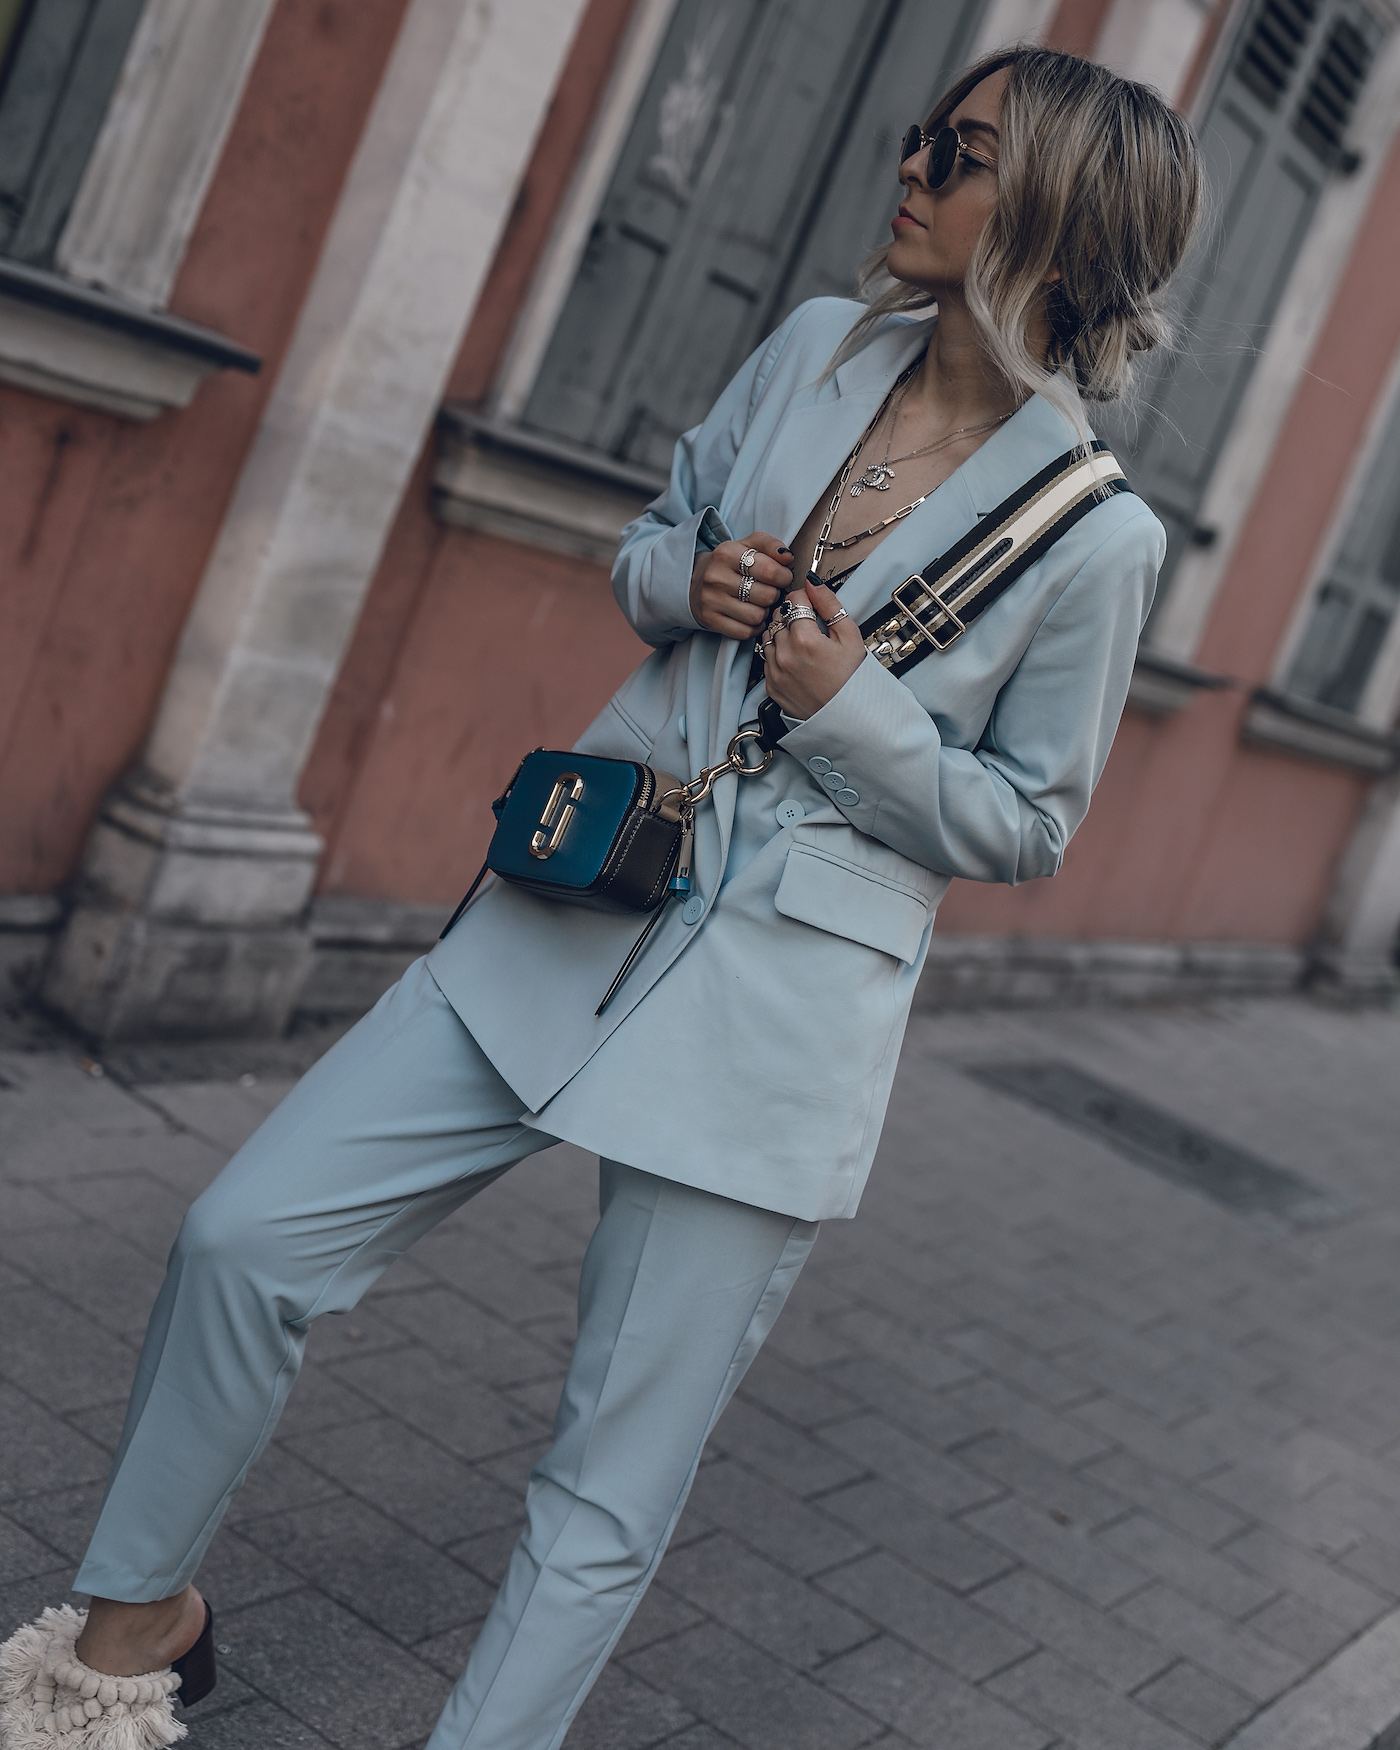 a8b3ea2f987d Pastel-Spring-Suit-Women-Outfit-Streetstyle-WantGetRepeat-Fashion-Blog-02